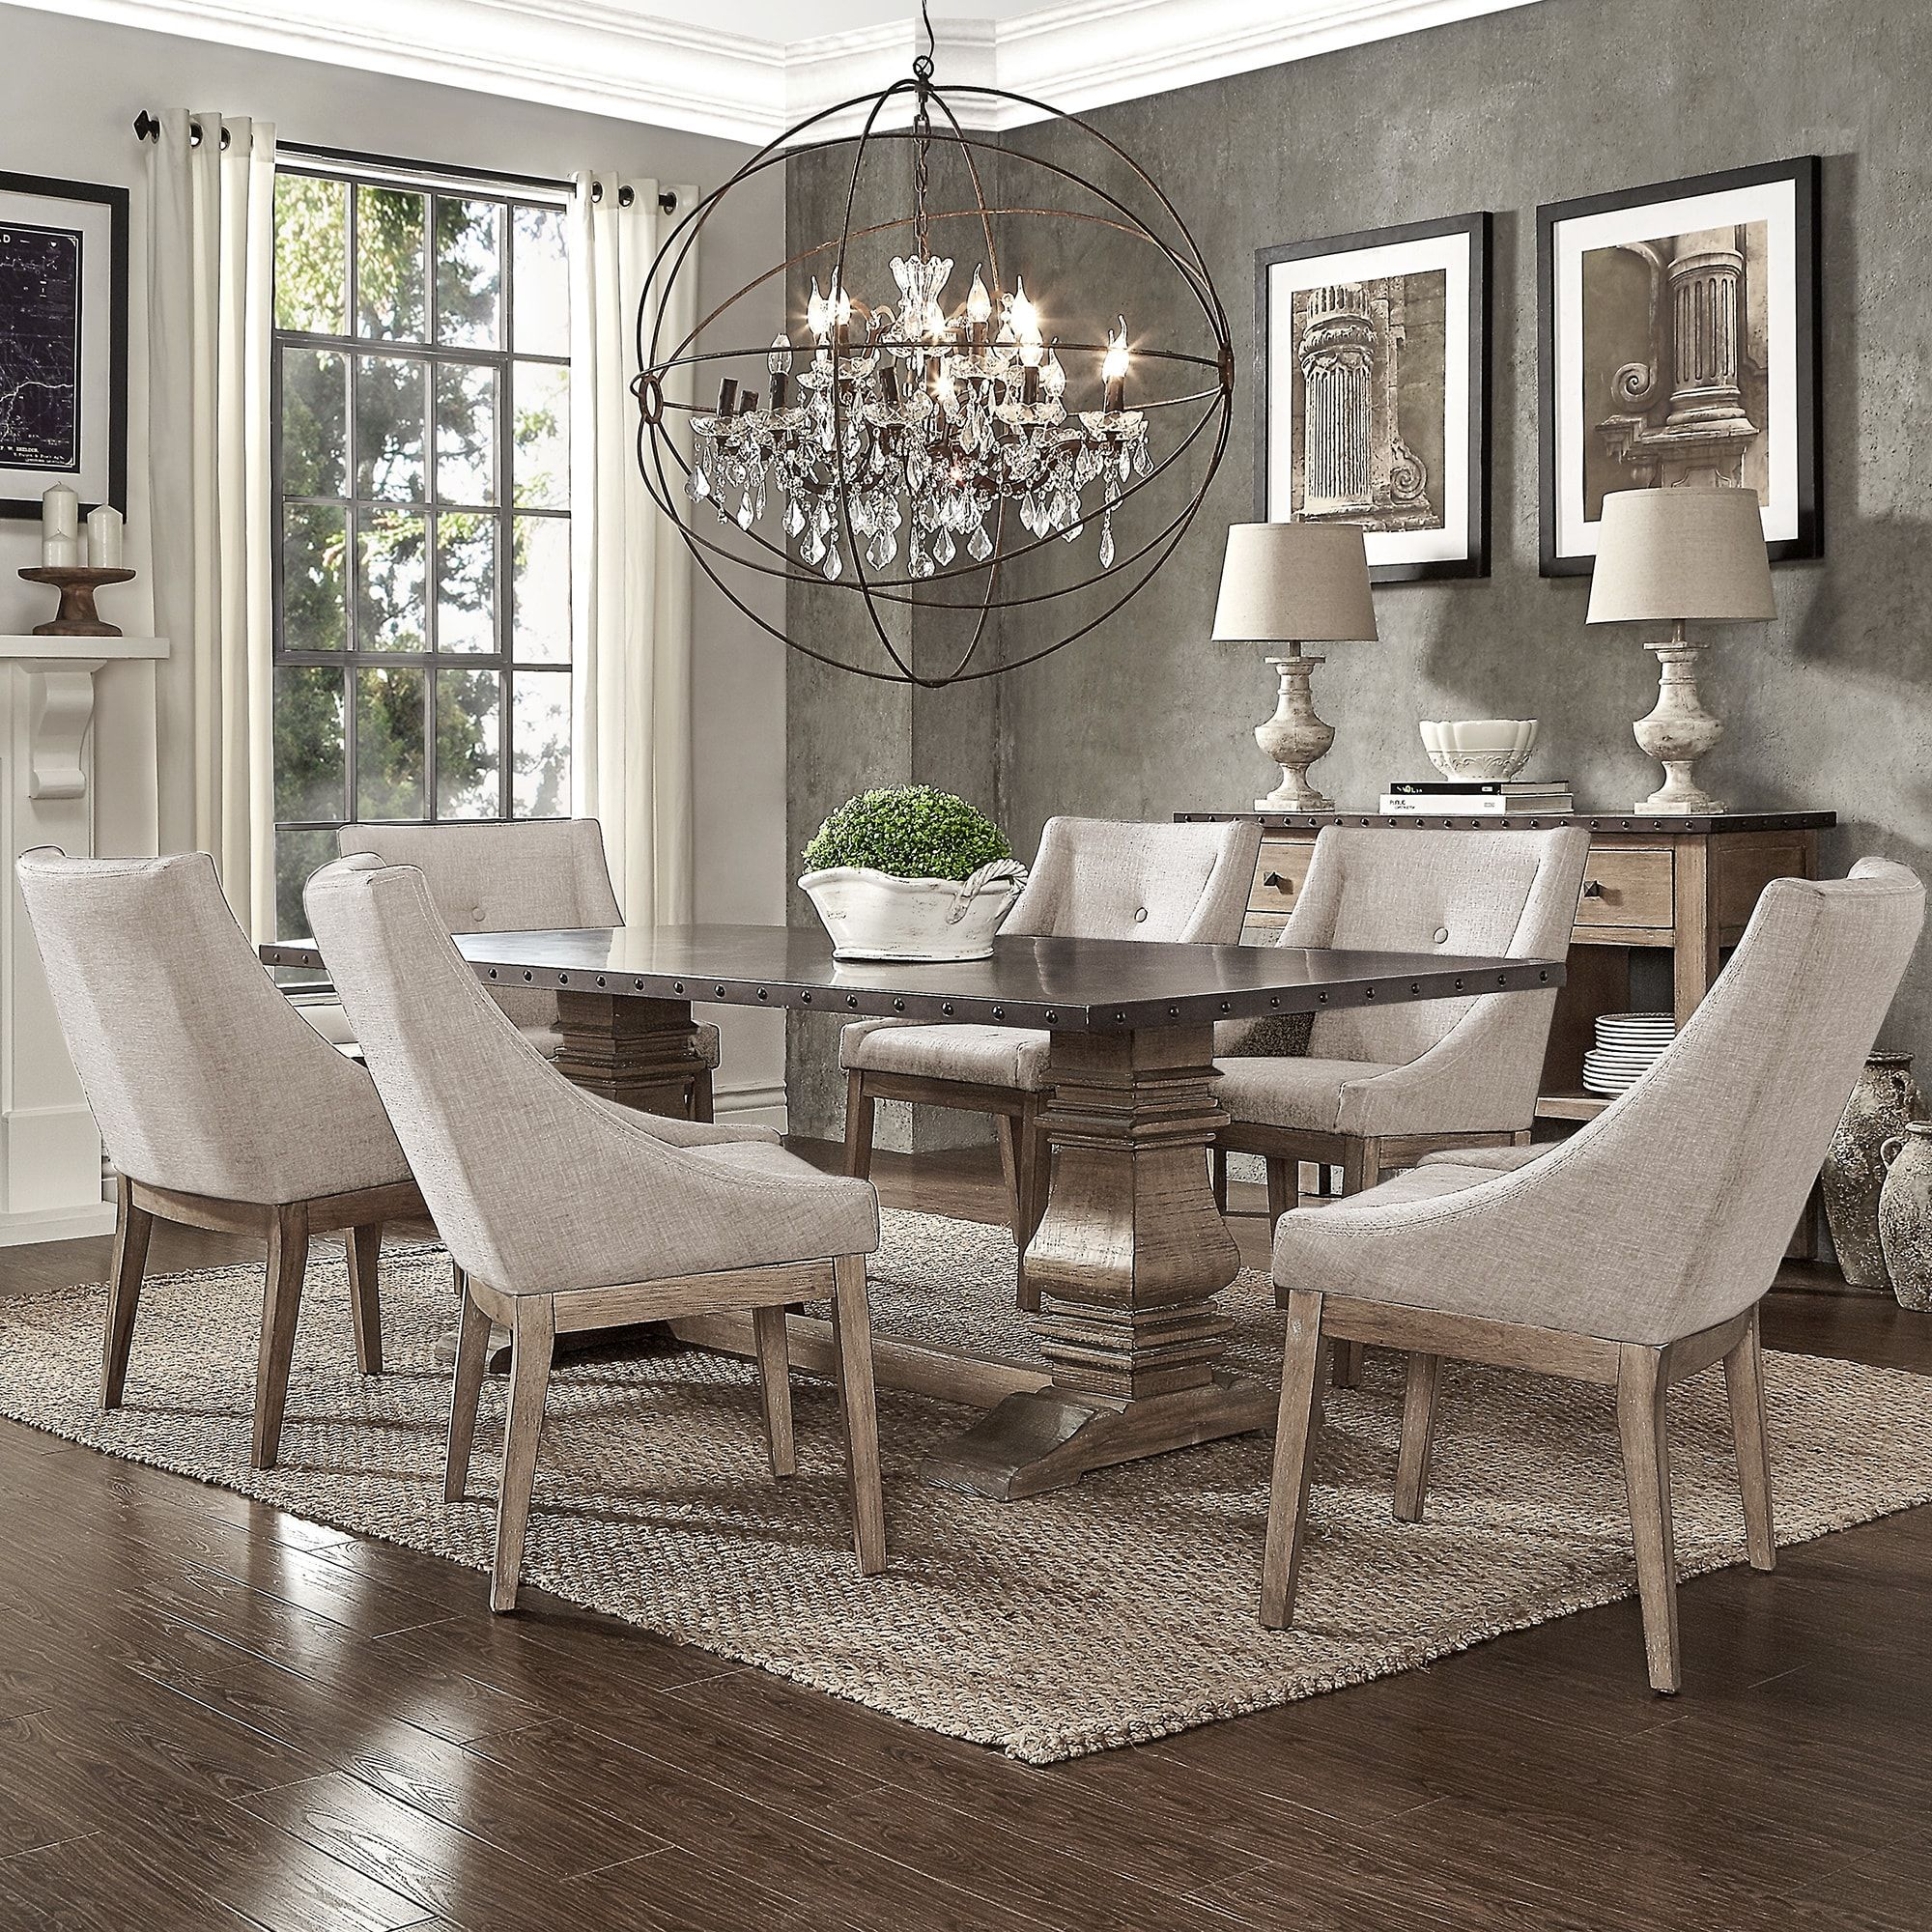 Brussels Traditional Dining Room Set 7 Piece Set: Janelle Extended Rustic Zinc Dining Set